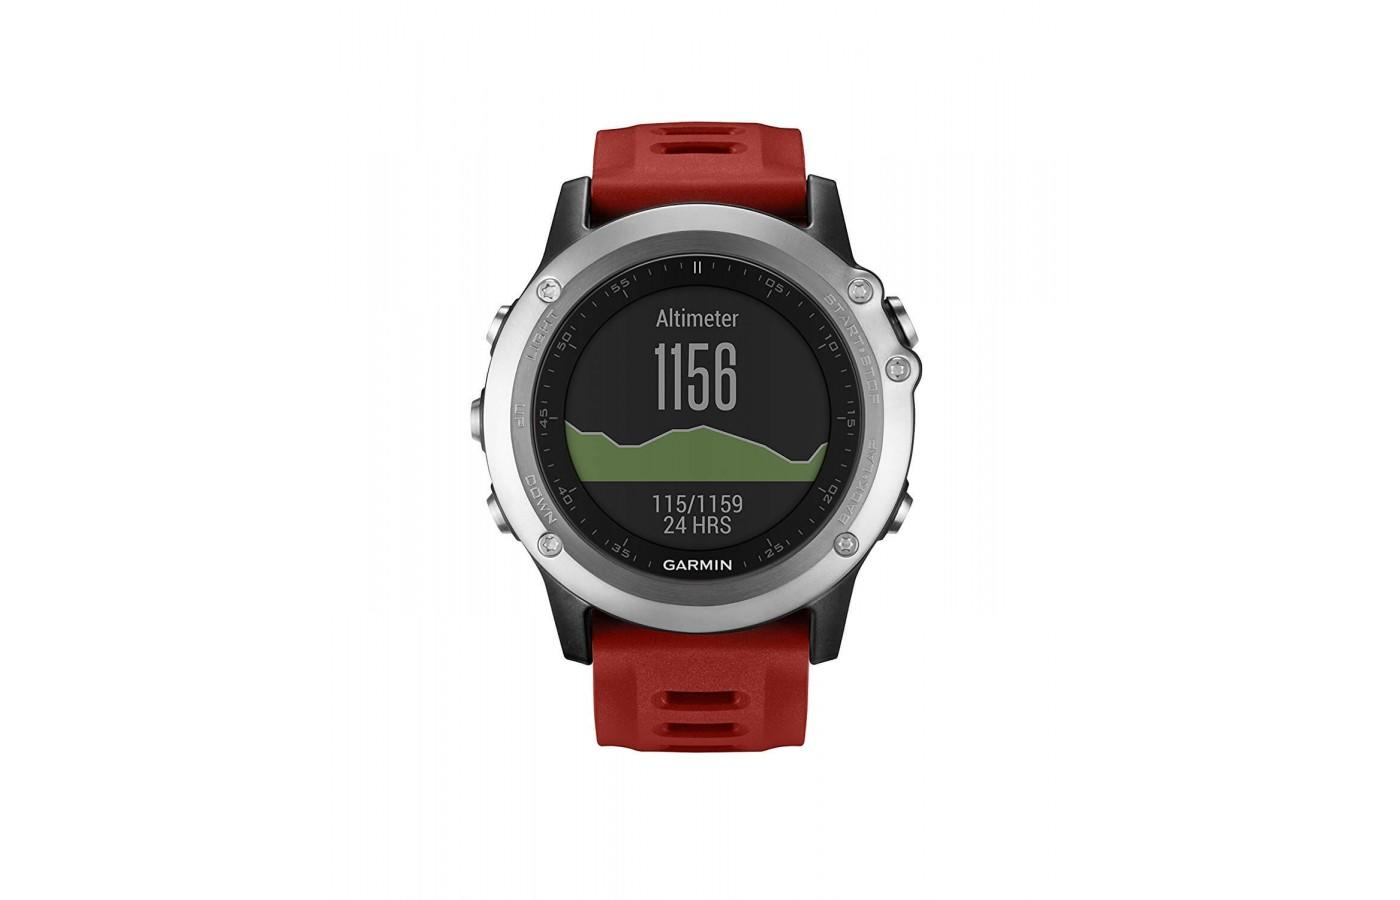 even in sunlight, the face of the Garmin fenix 3 is easy to read